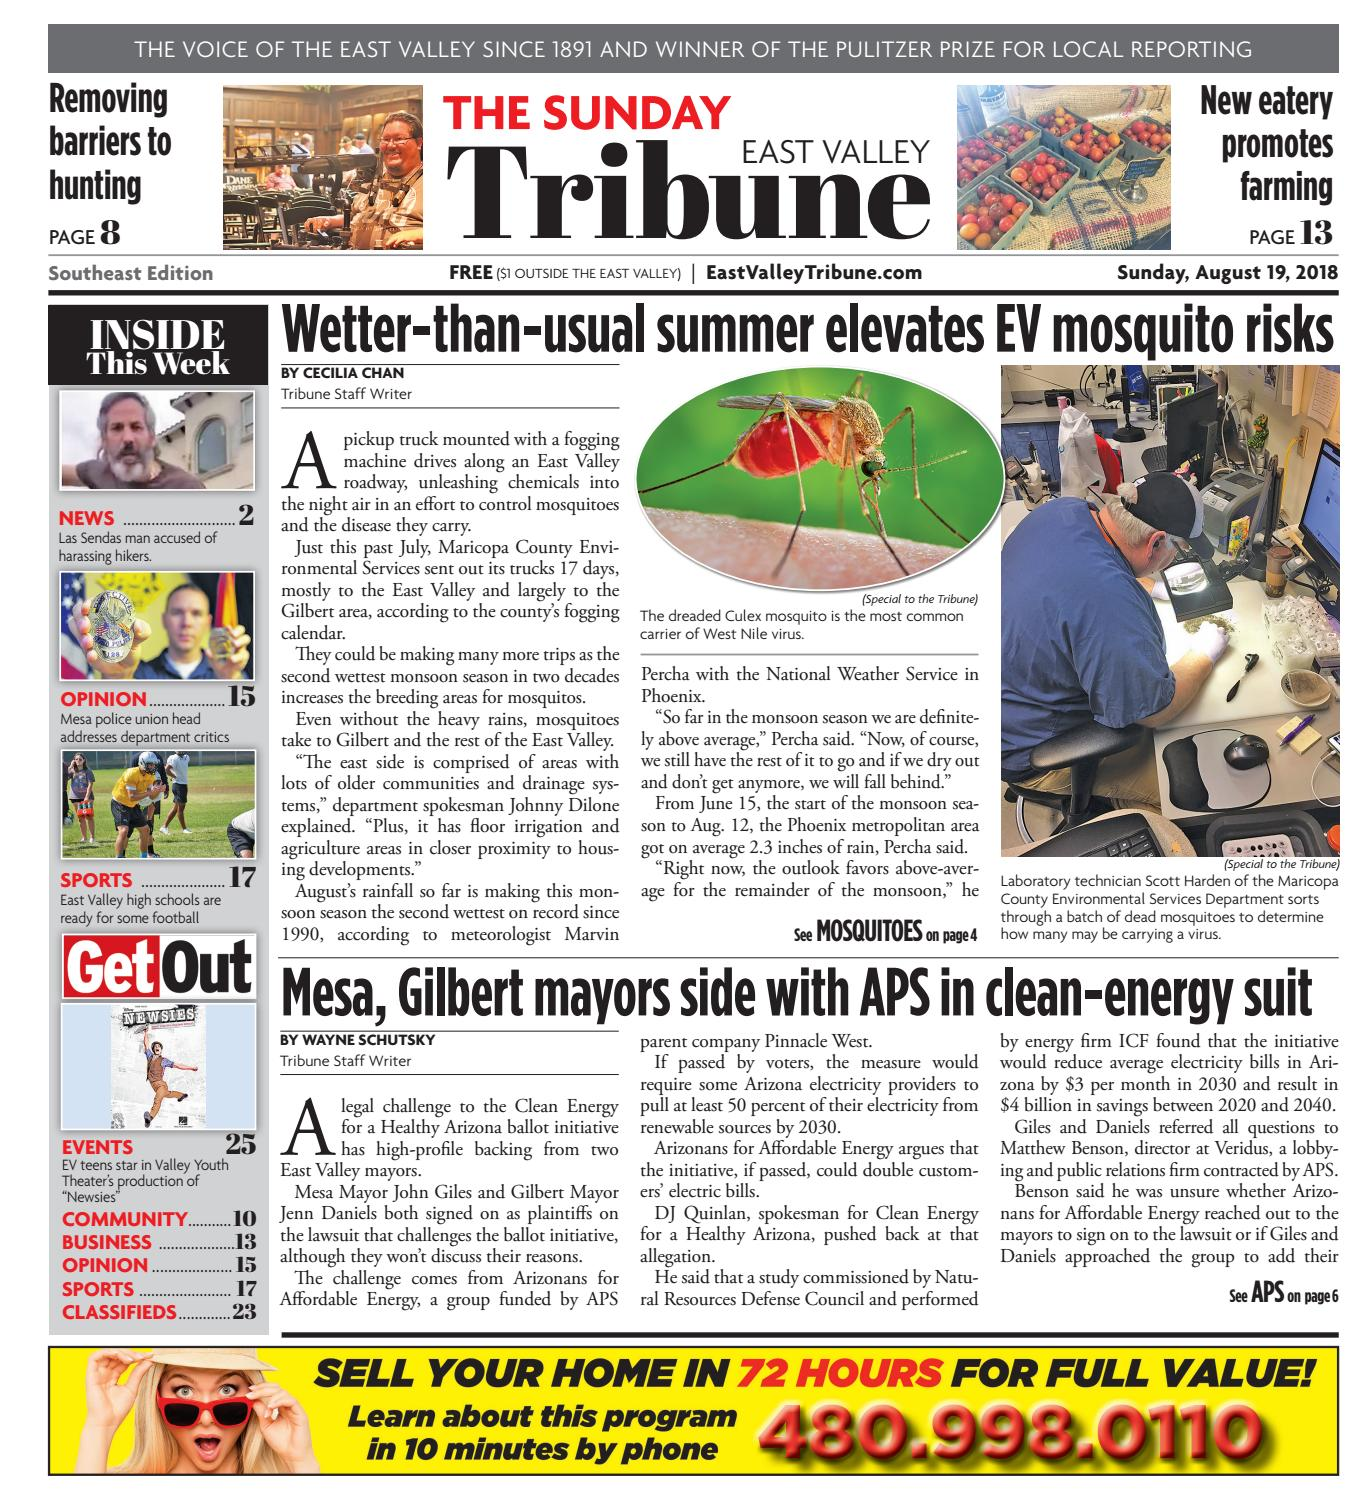 east valley tribune southeast august 19, 2018 by times media group